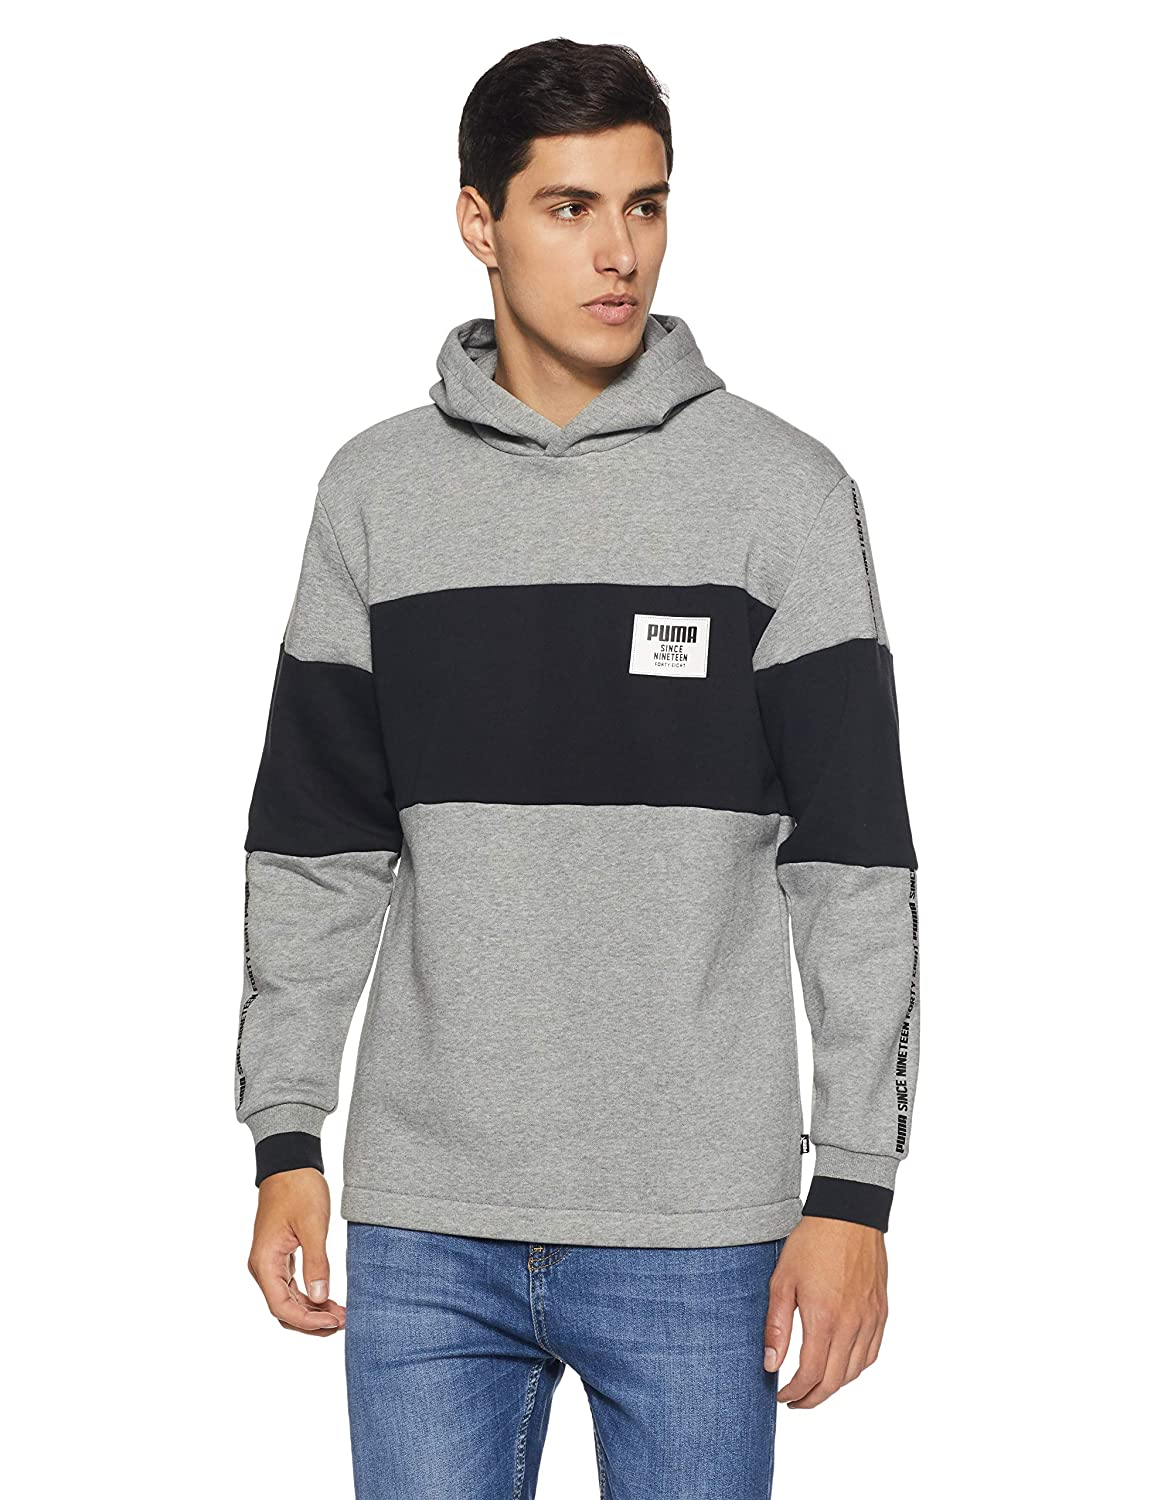 PUMA Rebel Block Hoody FL Sweatshirt, Hombre, Medium Gray Heather, XL